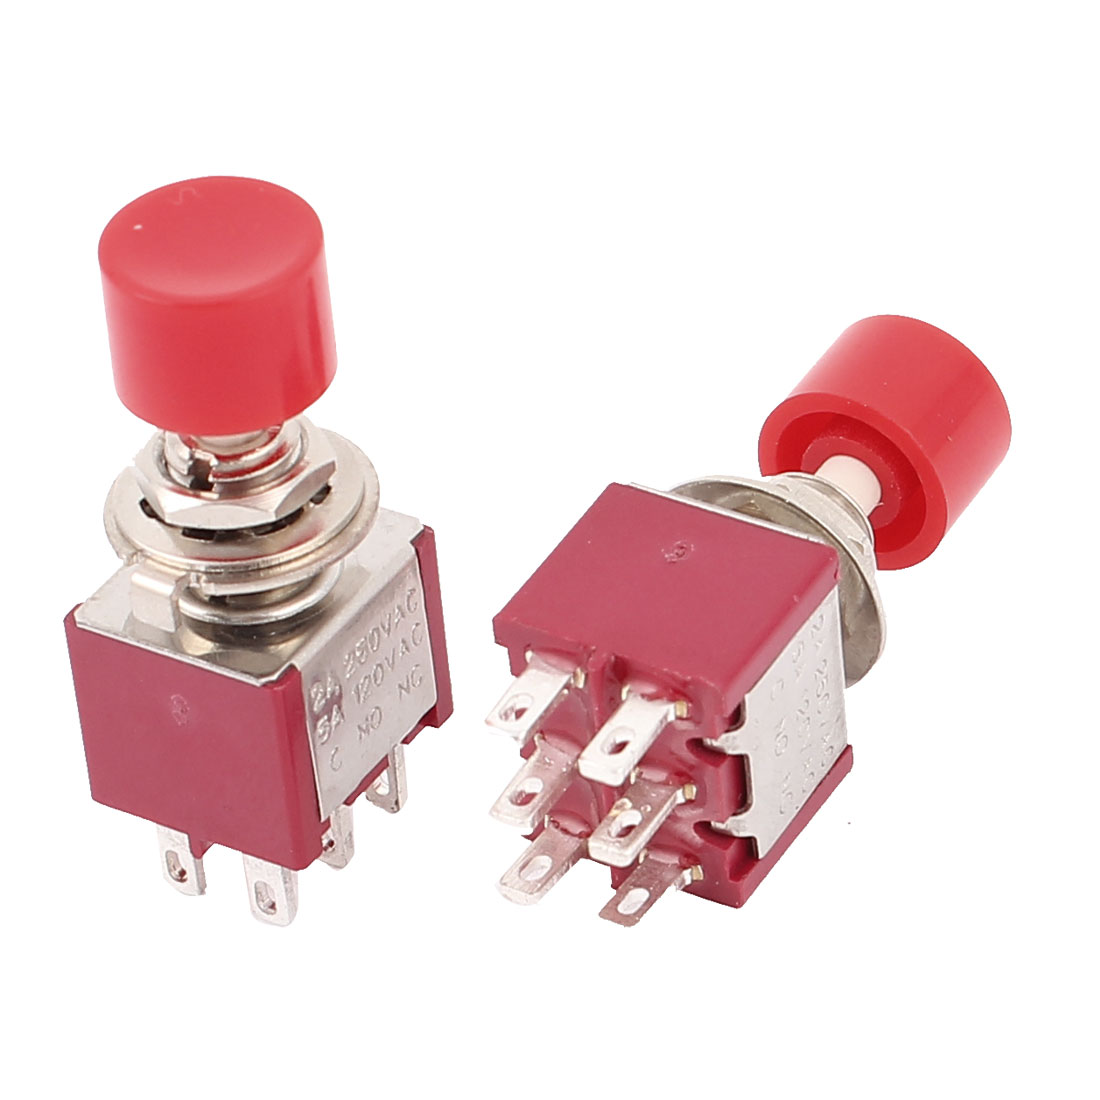 AC250V/2A dpdt on/off 6 terminals momentary push button switch 2pc